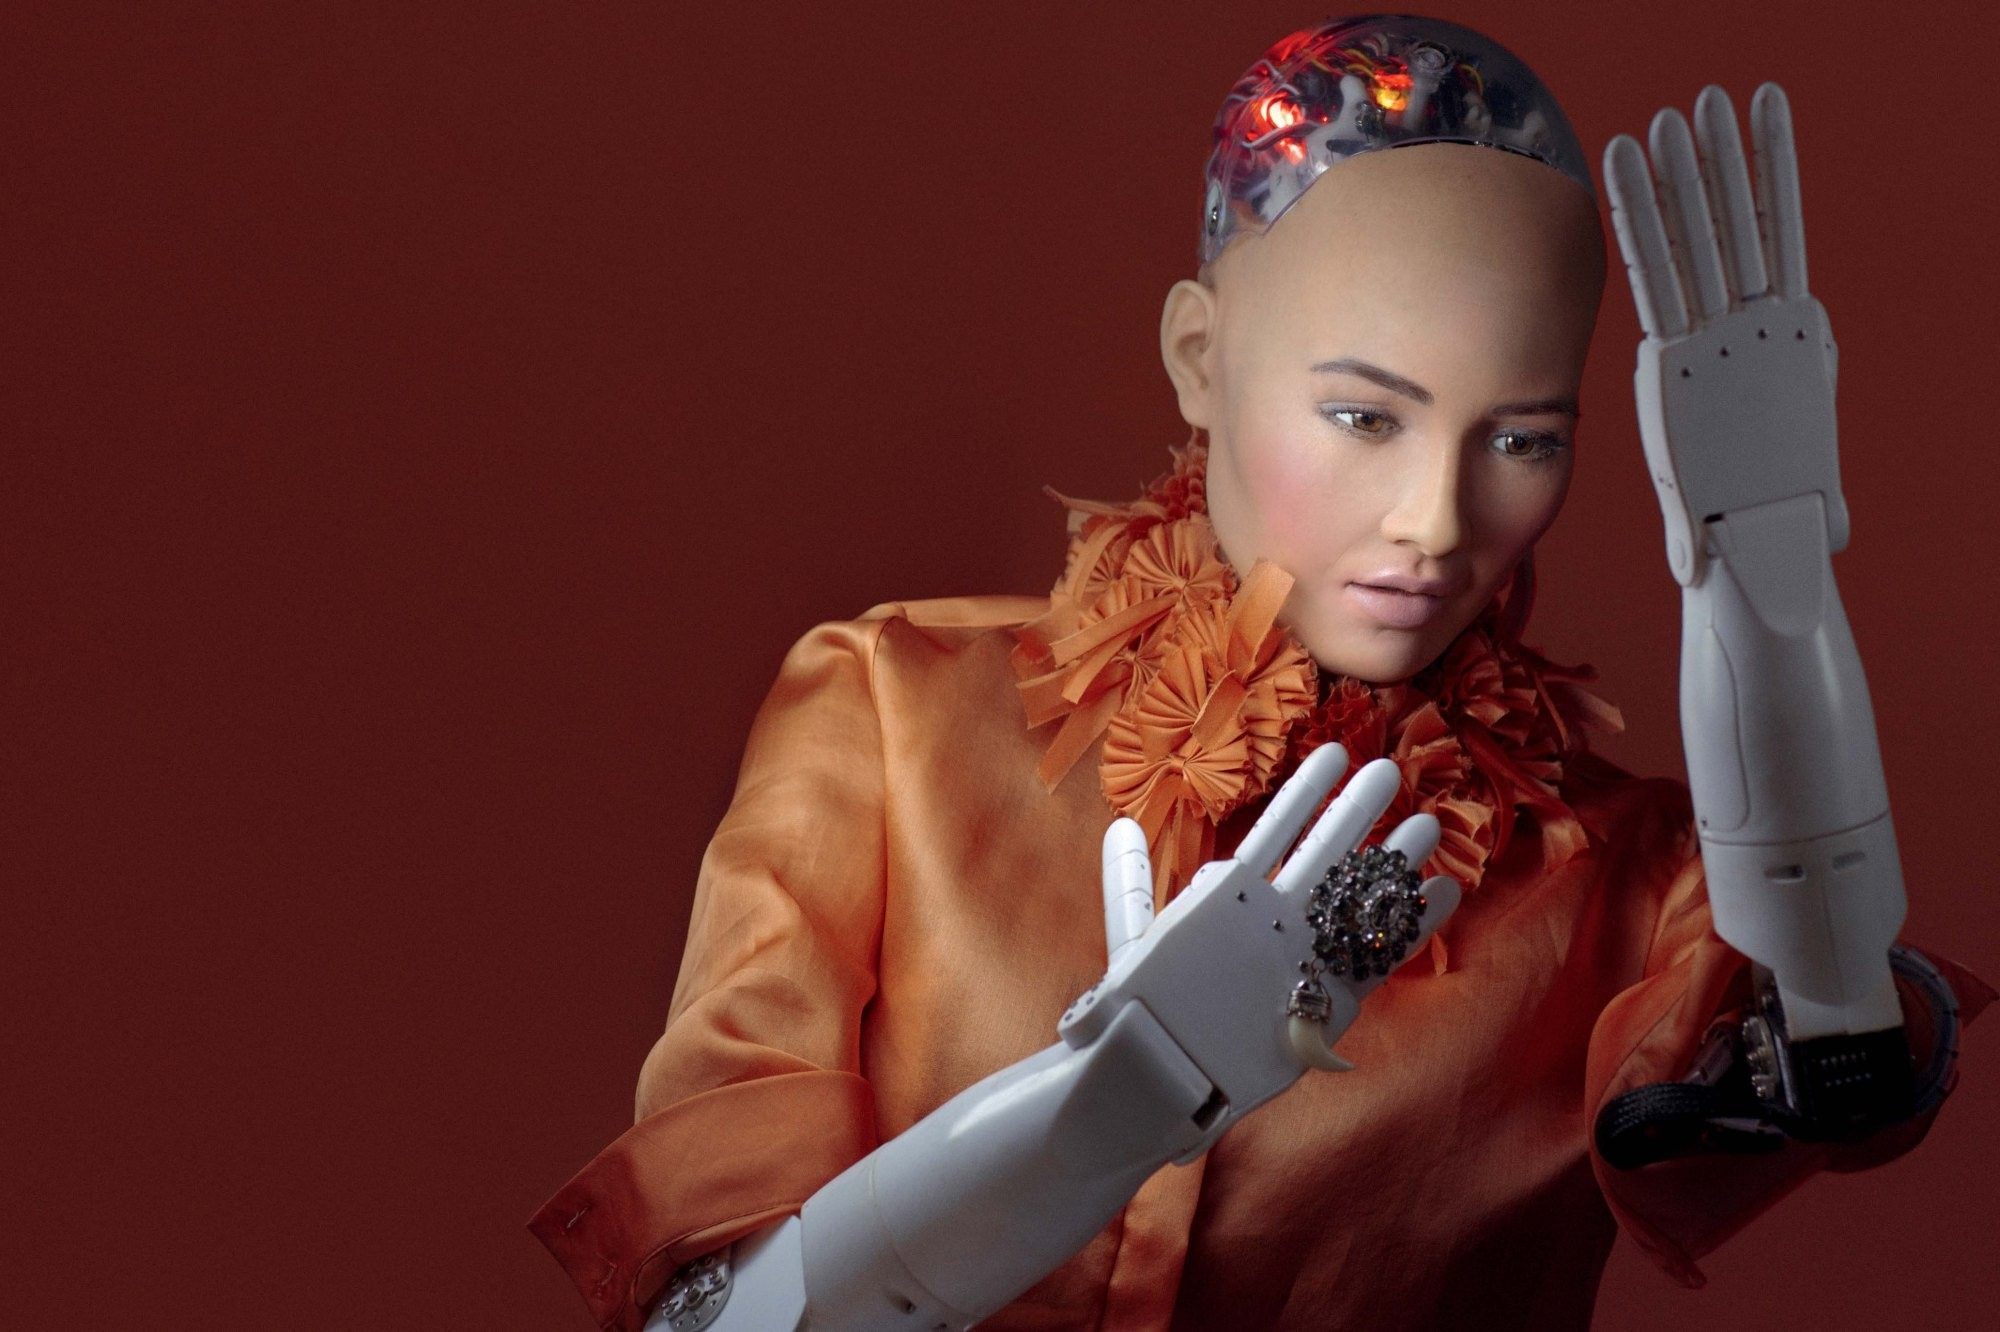 Sophia is a social humanoid robot developed by Hong Kong-based company Hanson Robotics in 2015.